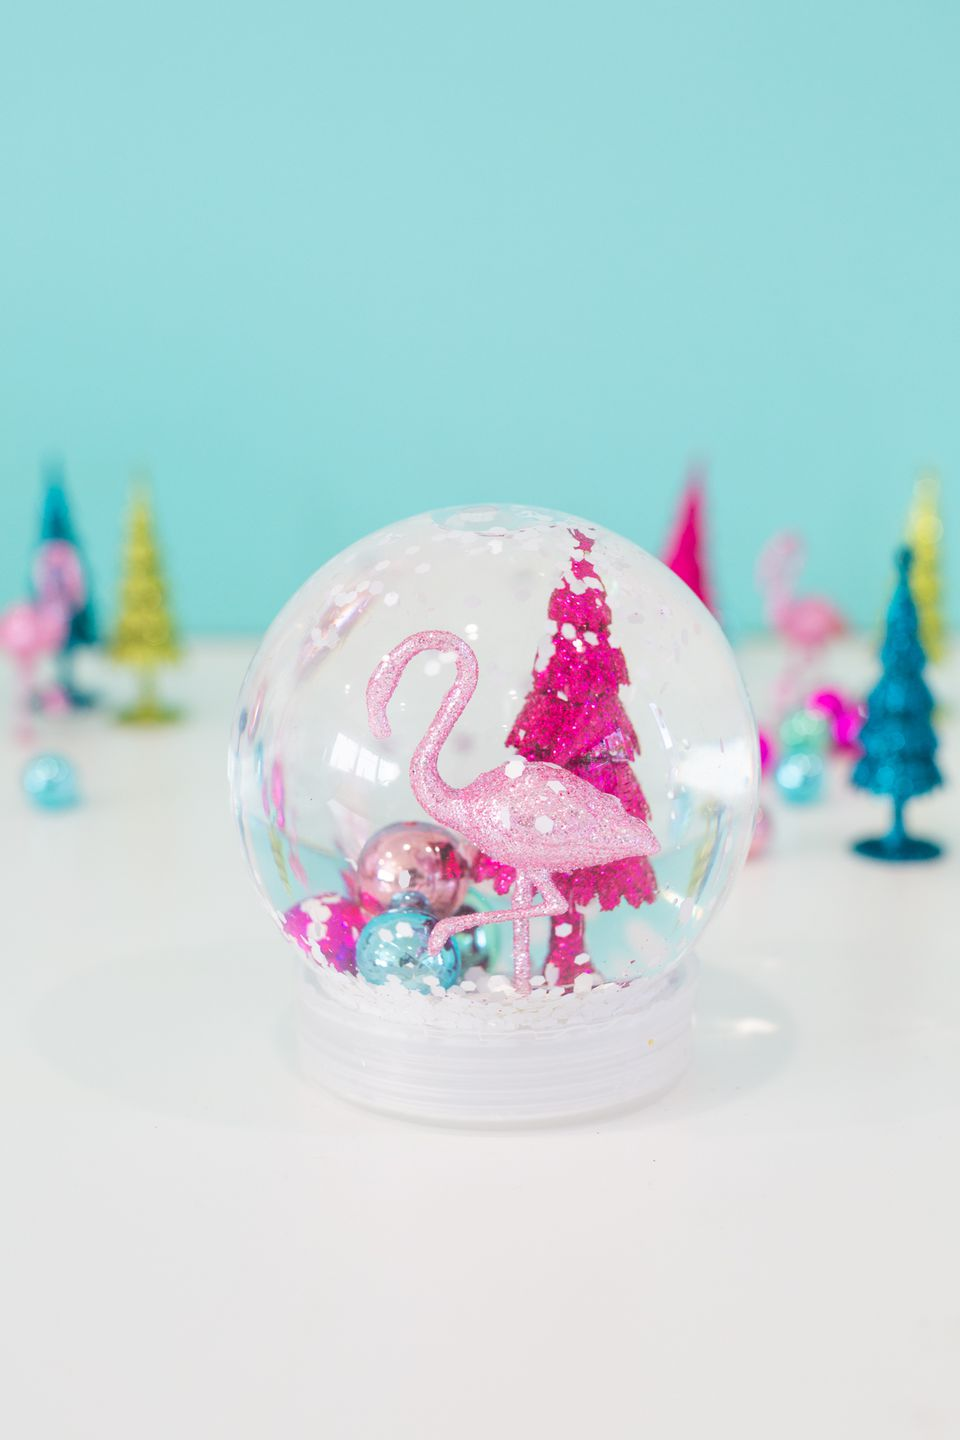 Snow globe with a flamingo